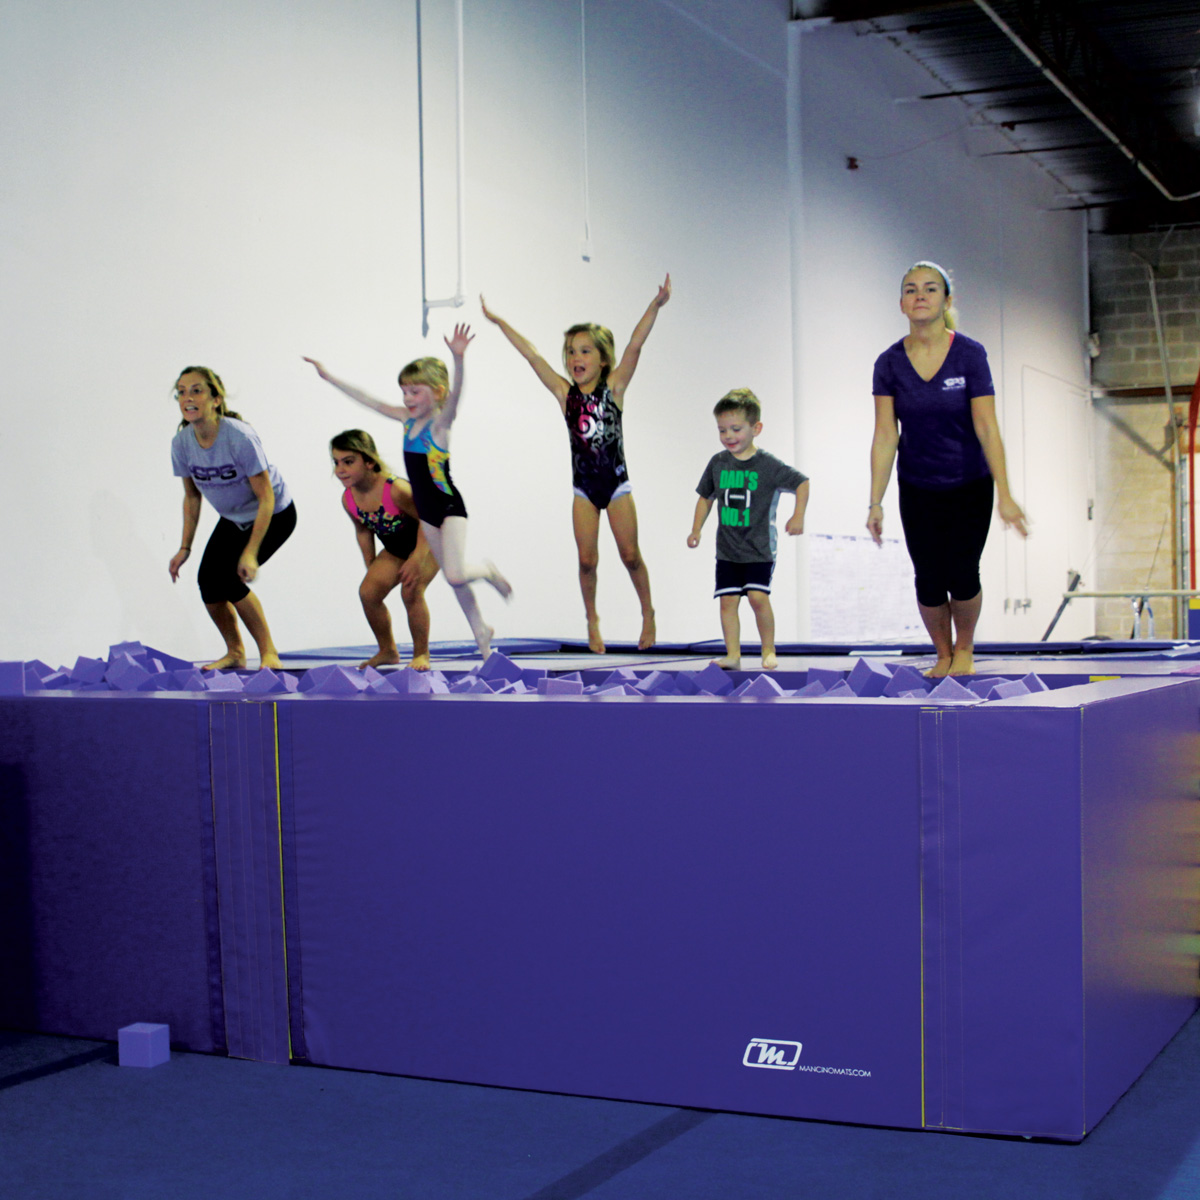 kids jumping in foam play gymnastics pit - mancino mats